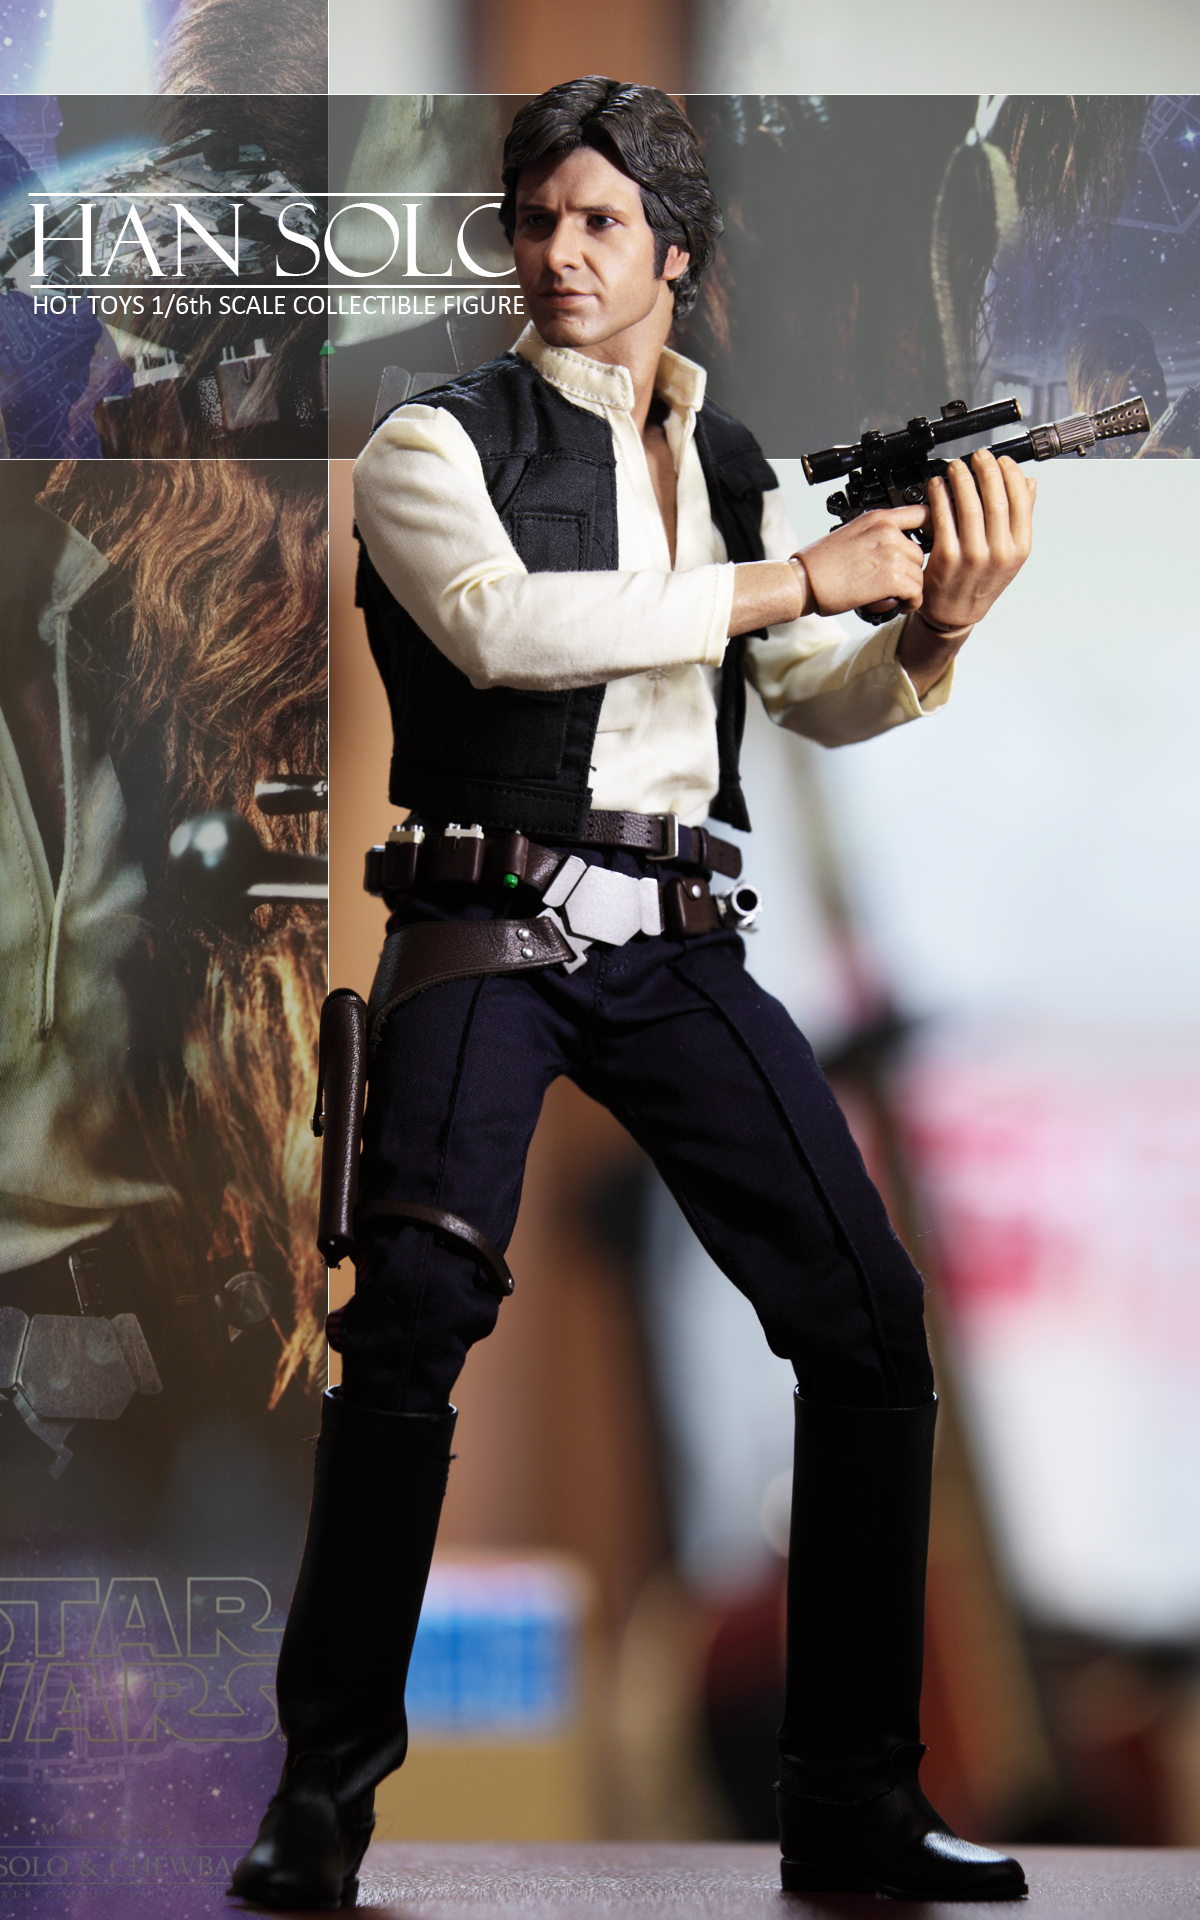 hottoys-star-wars-episode-IV-a-new-hope-han-solo-&-chewbacca set-picture07